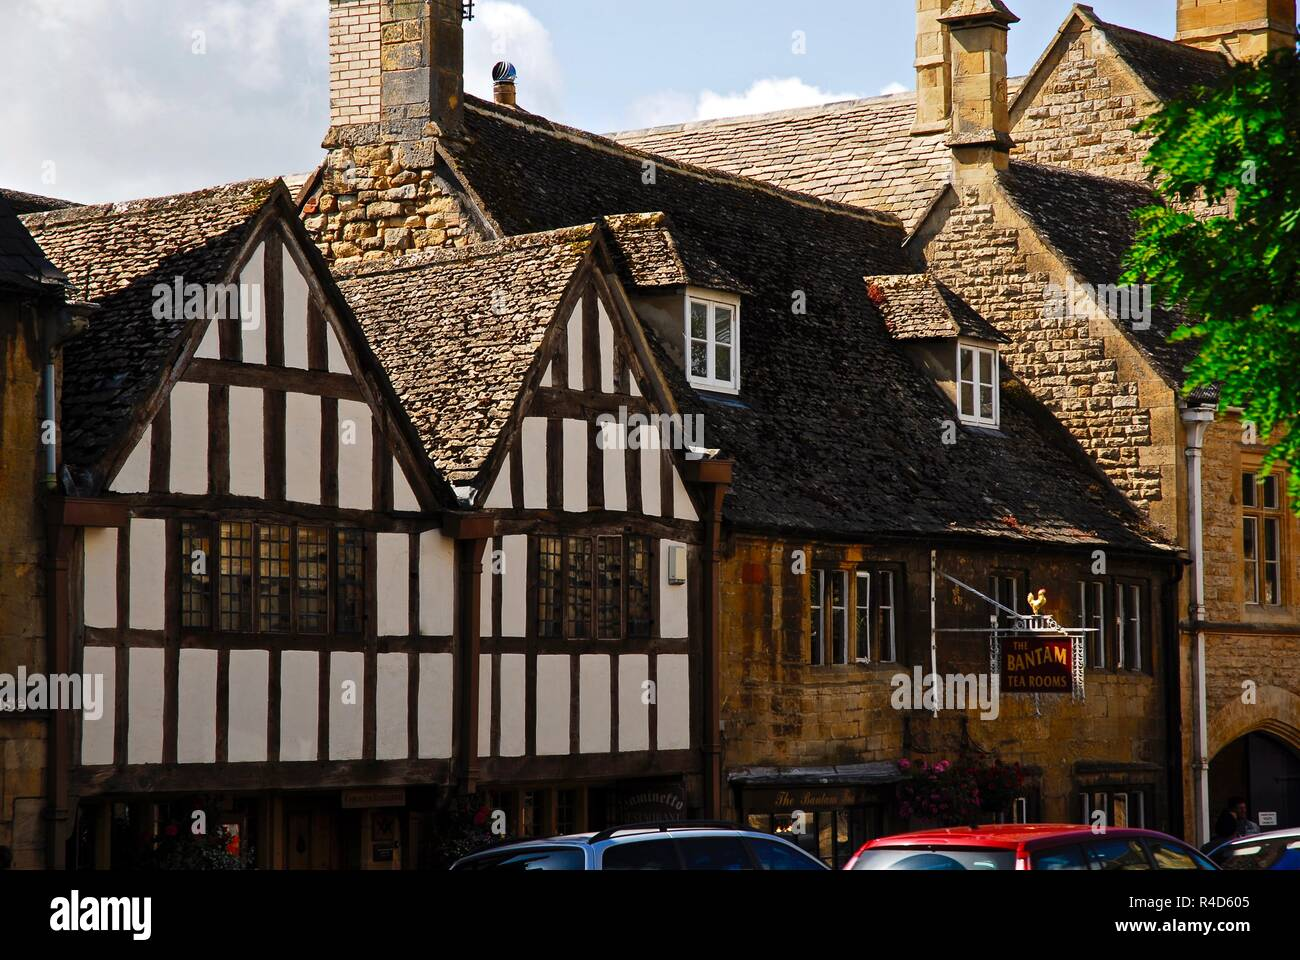 Half timbered, post and beam, tudor Cotswold stone buildings in the market town of Chipping Campden, Cotswolds, Gloucestershire, UK - Stock Image